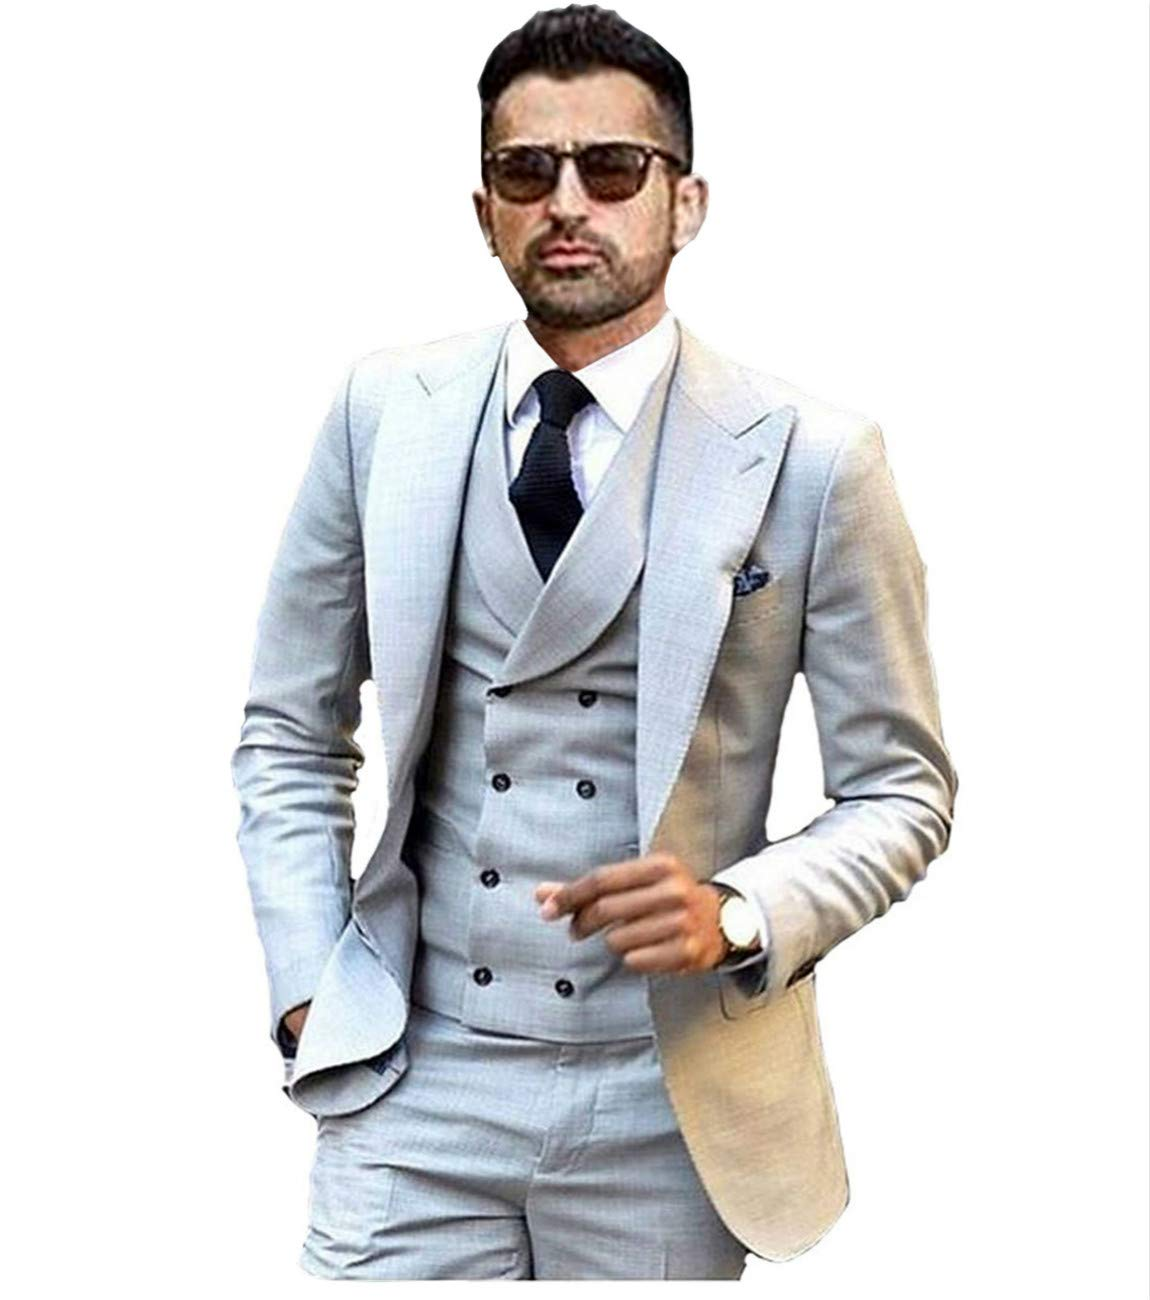 Jy Men S Fashion 3 Pieces Men Suits Wedding Suits For Men Groom Tuxedos Buy Online In India At Desertcart In Productid 55531653